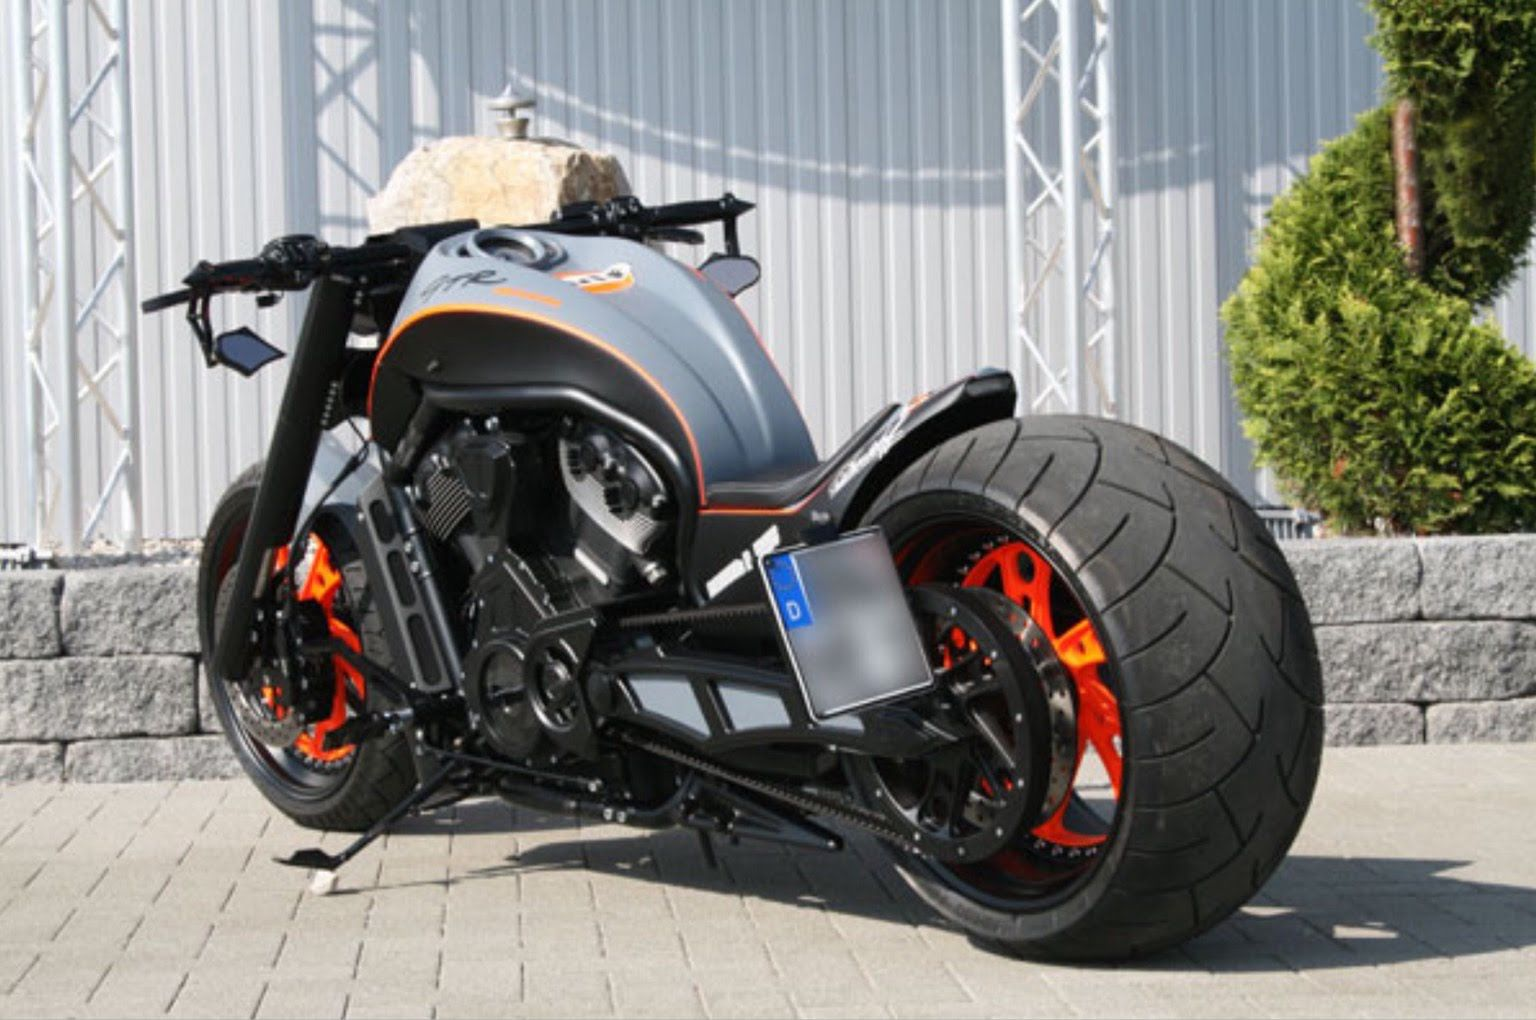 Harley Davidson Mclaren Edition A Stunning Bike To Ride V Rod